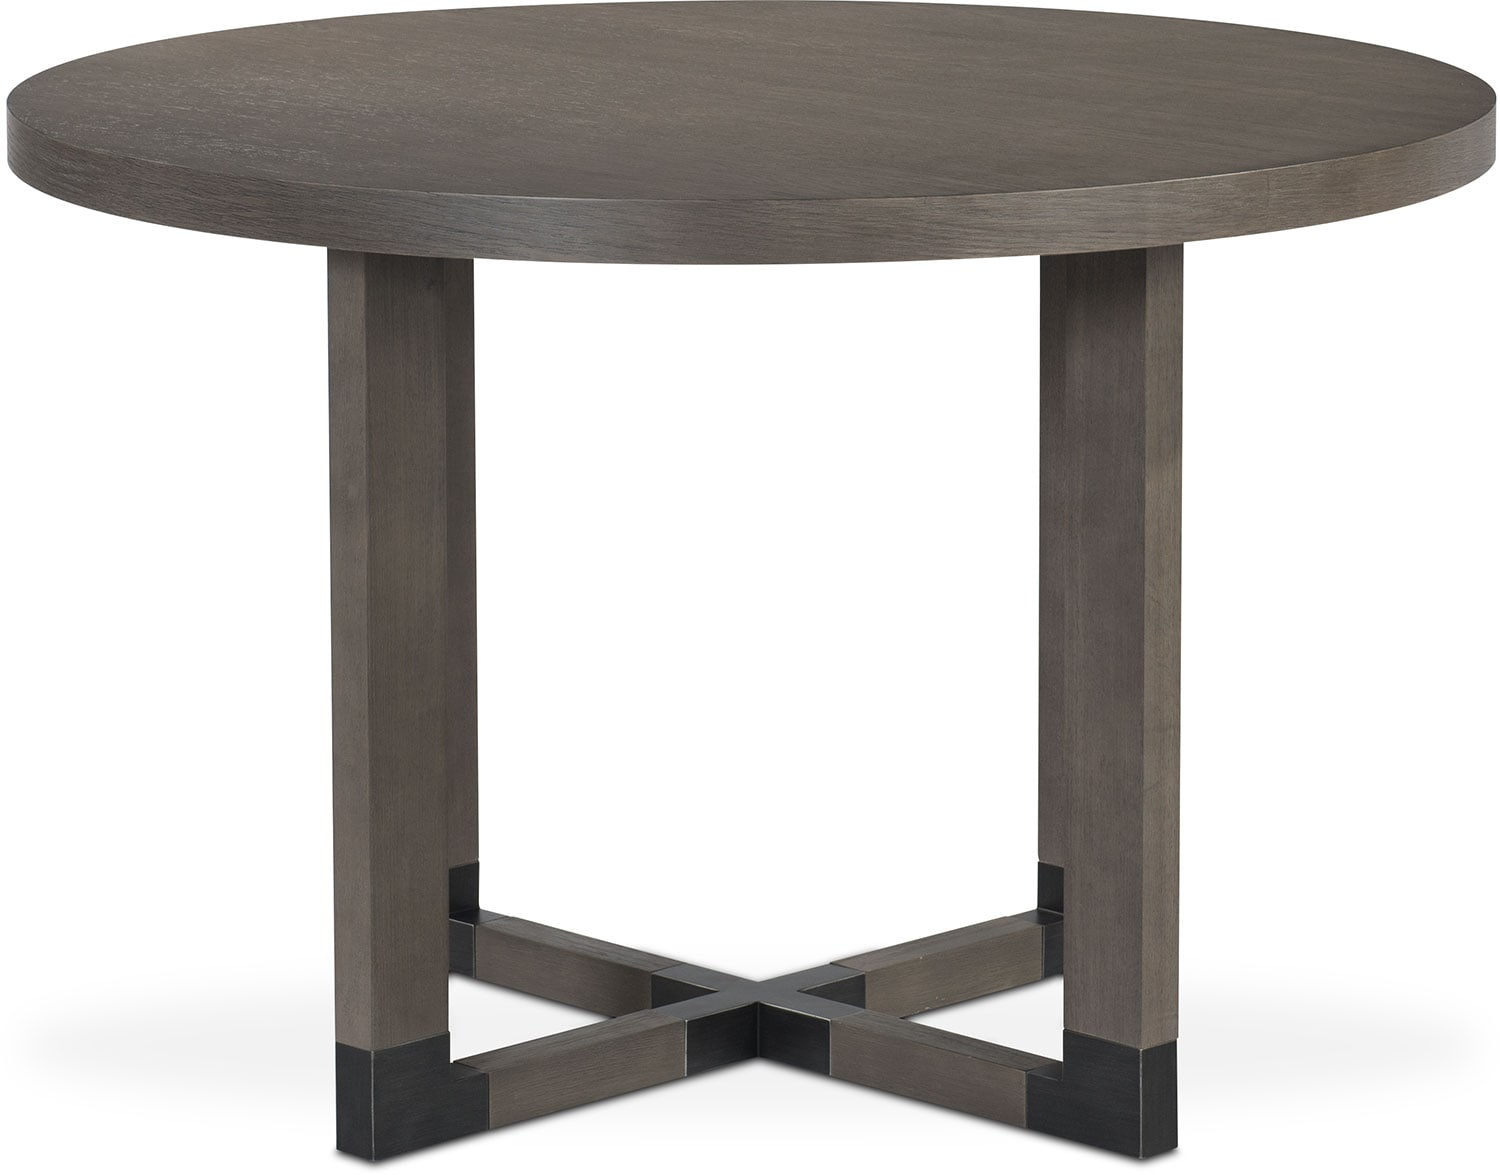 Malibu Round Counter Height Wood Top Table Gray  : 514290 from www.americansignaturefurniture.com size 1500 x 1175 jpeg 121kB